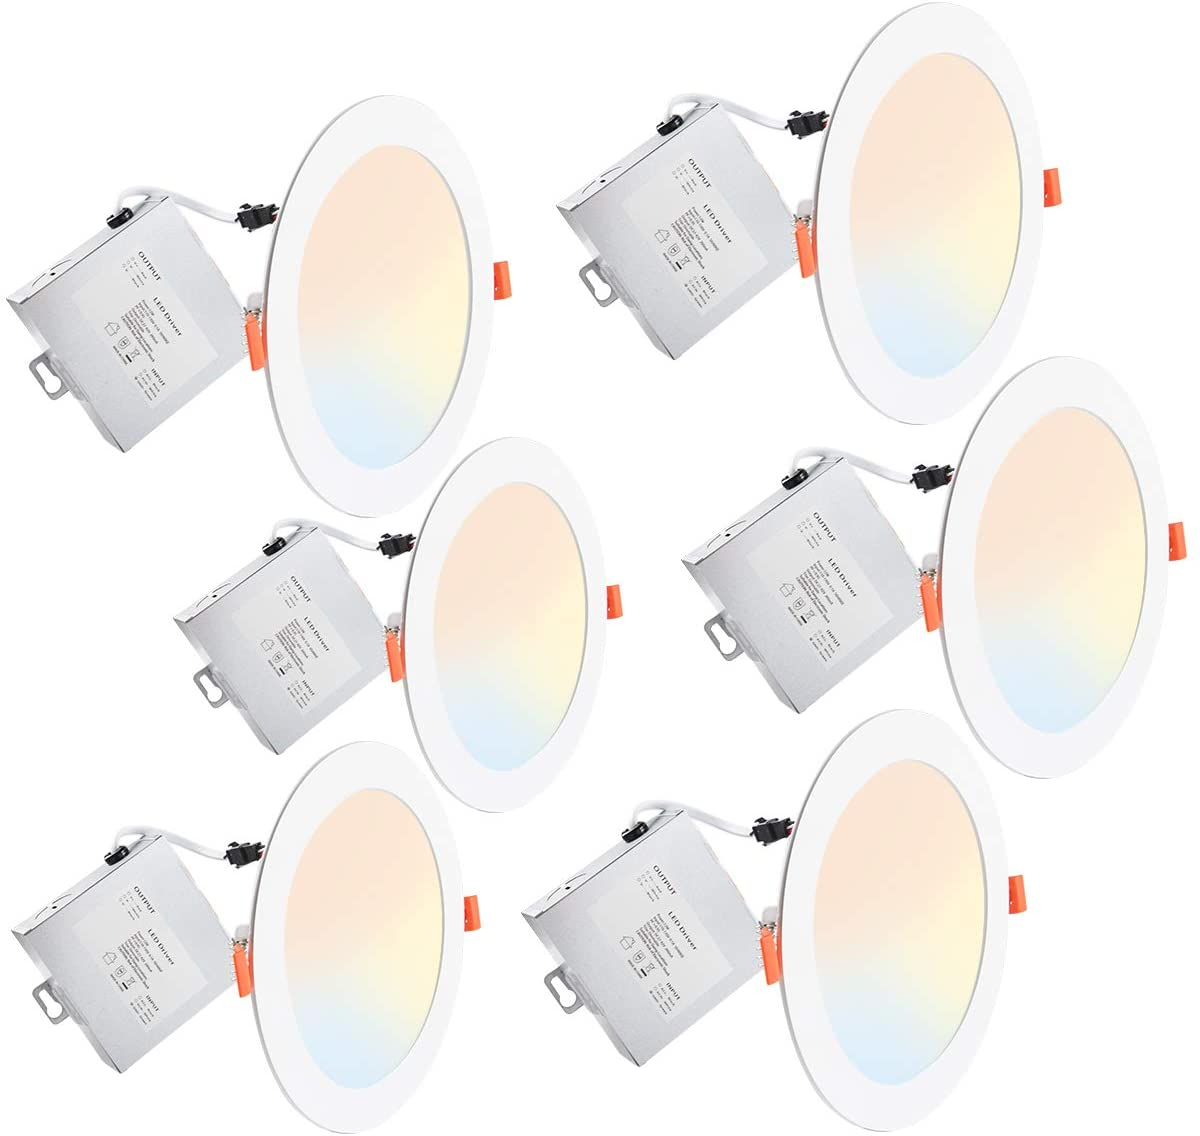 Lightdot 5/6 Inch 3000K/4000K/5000k/ Color Temperature Adjustable 12W Ultra Thin LED Recessed Down Light with Junction Box Dimmable(12W=100W), 6 Pack